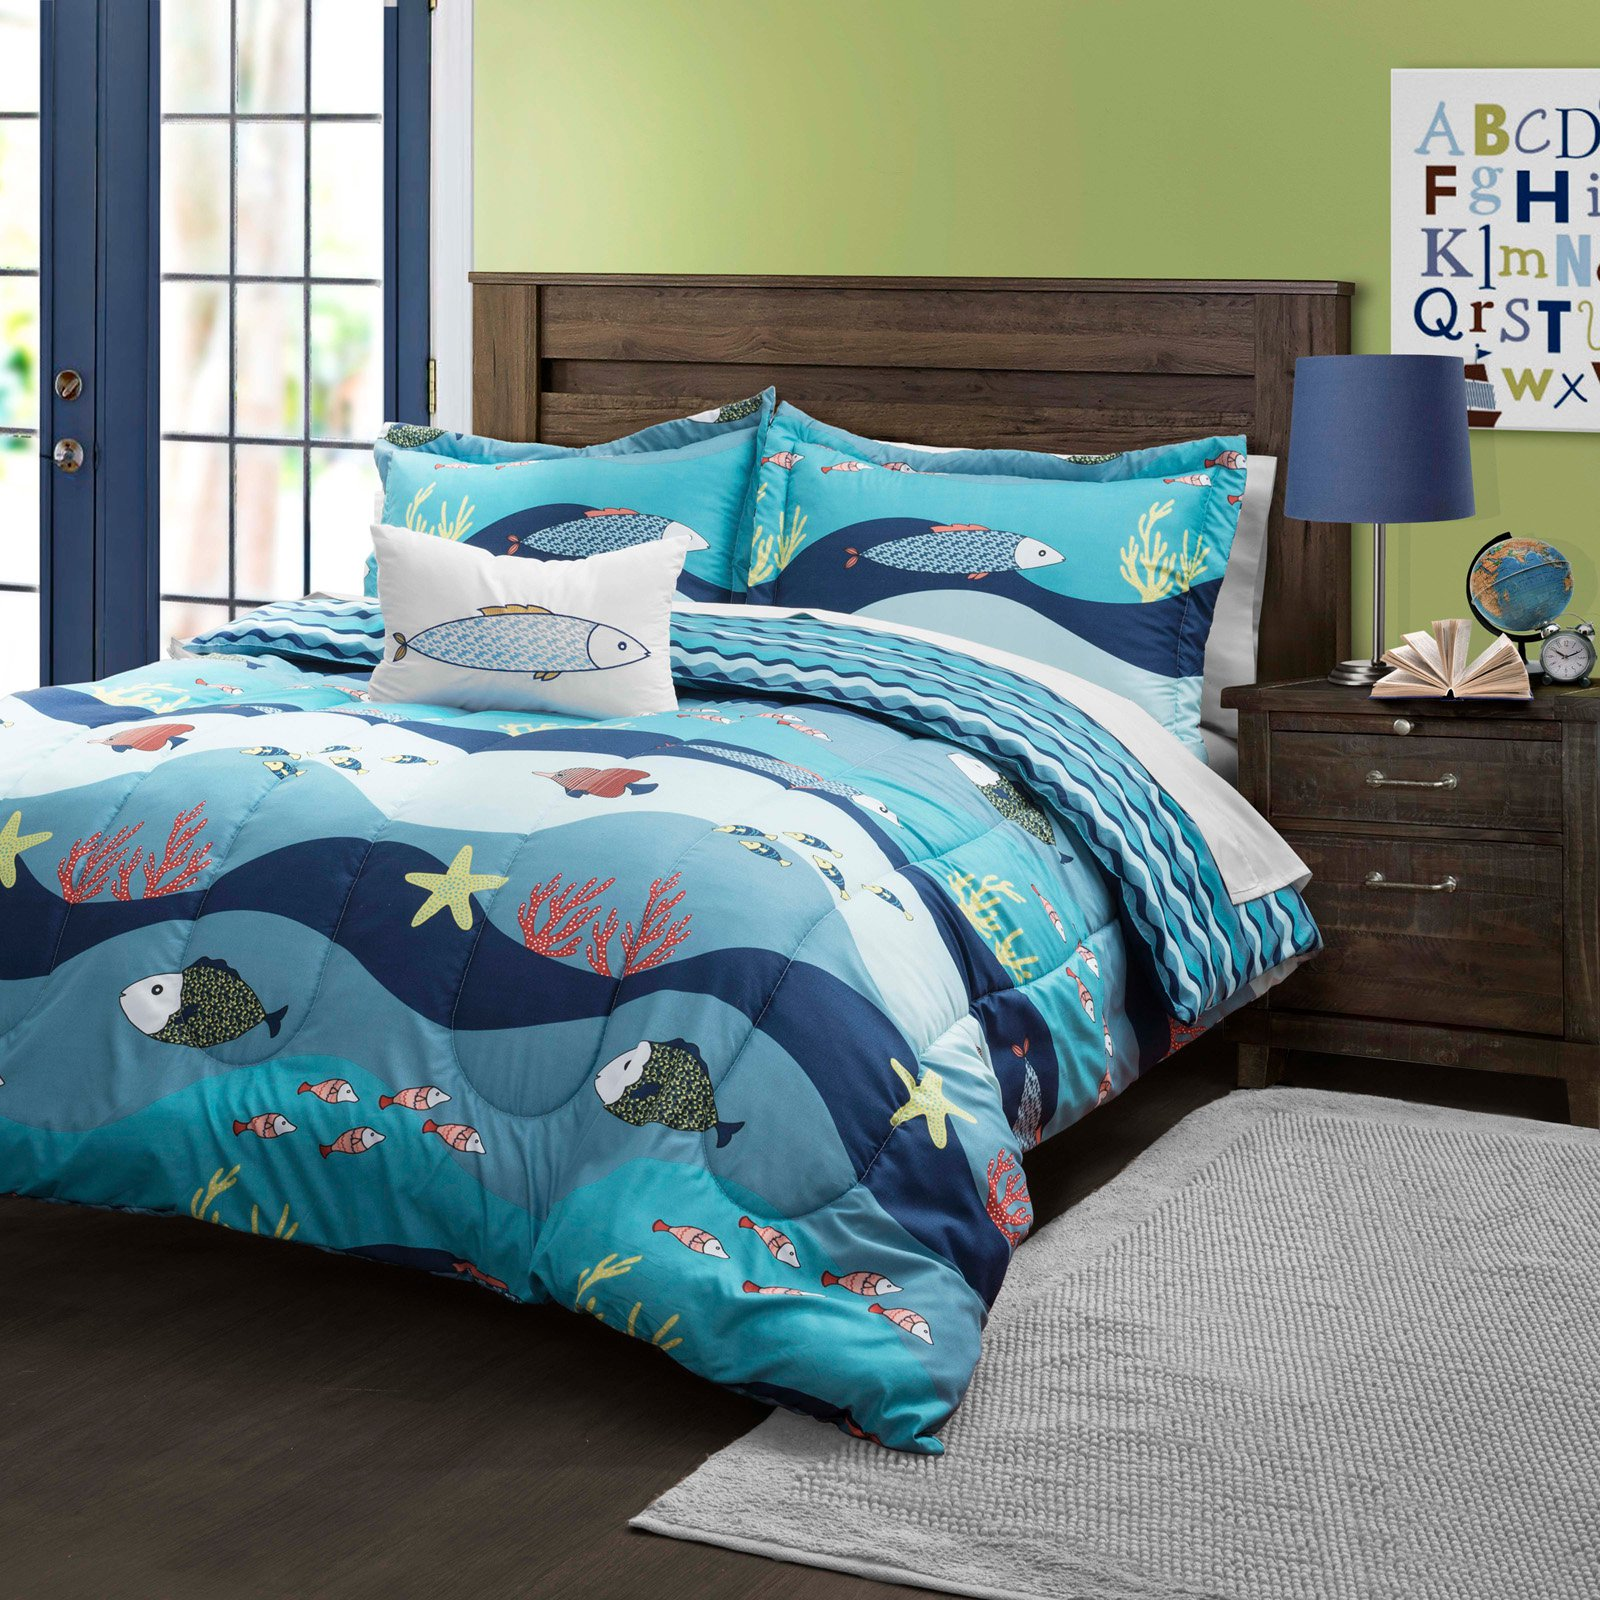 Seaworld Comforter Set by Lush Decor